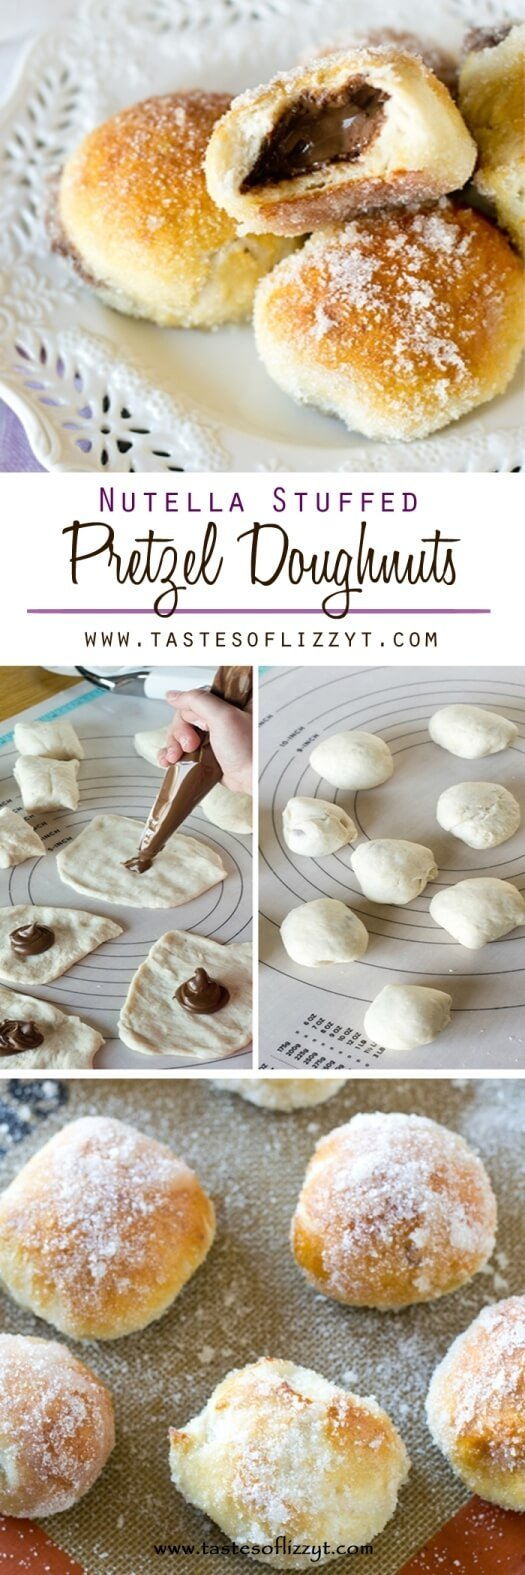 Nutella Stuffed Pretzel Doughnuts {Easy Doughnut Recipe for Kids to Make} A simple pretzel mix gets transformed into these baked Nutella Stuffed Pretzel Doughnuts. Soft, chewy pretzels with sugar coating and a Nutella center.